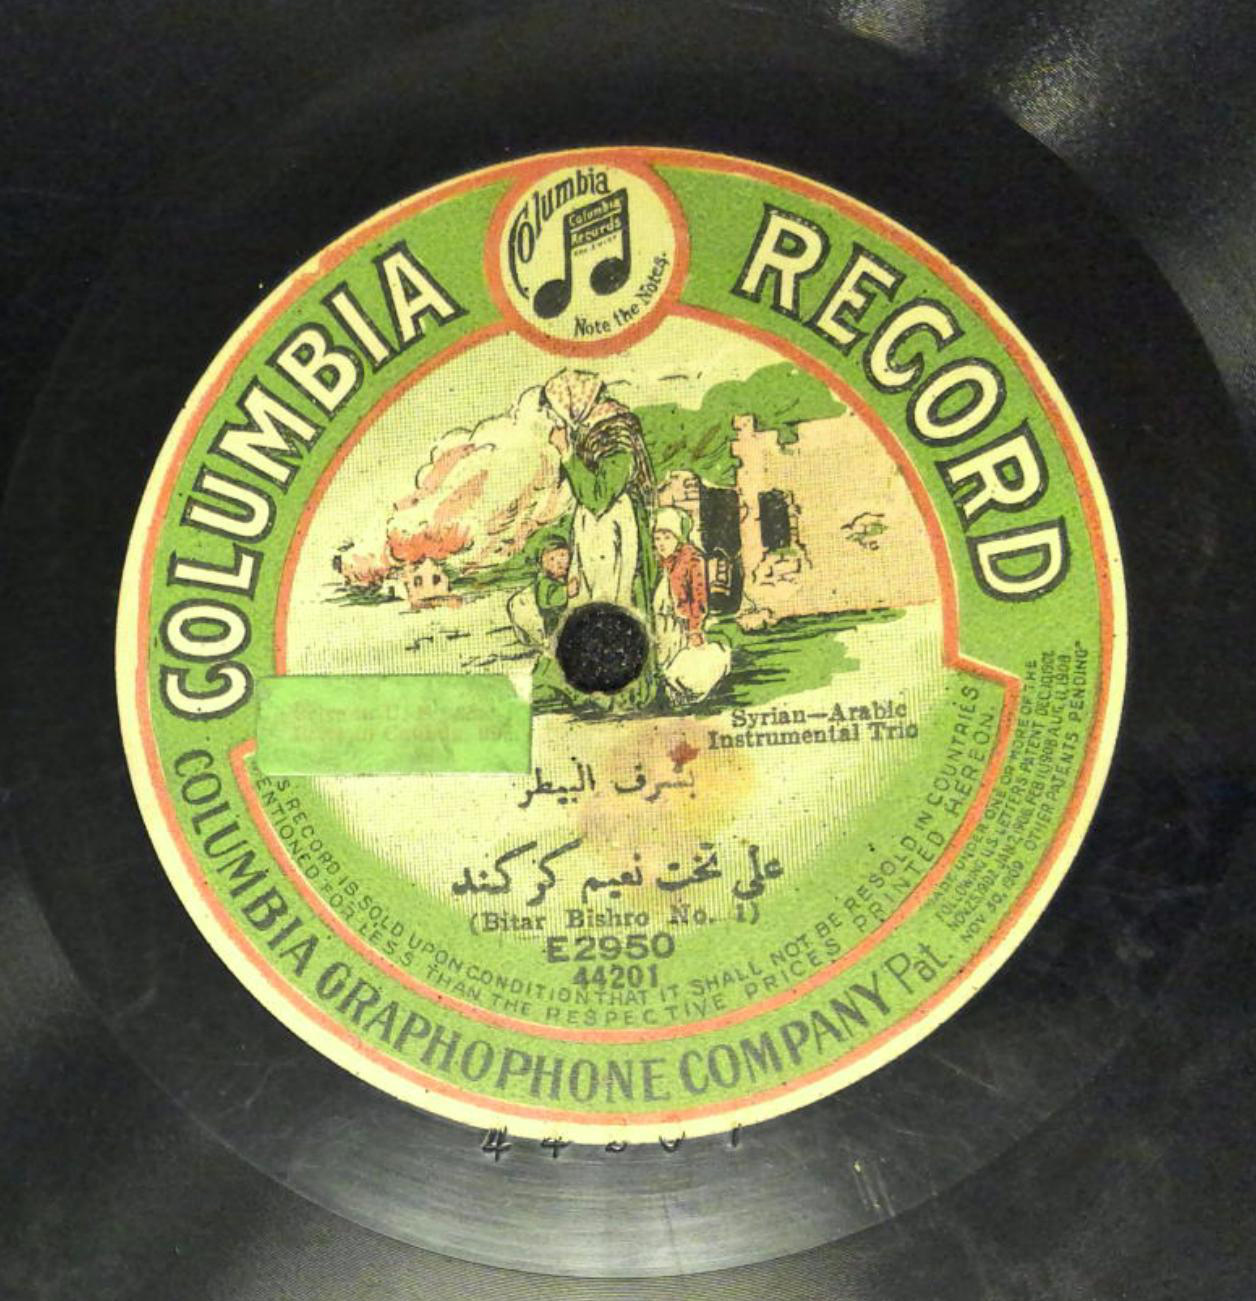 Arabic 78 RPM Records Collection: A Newly-Catalogued Treasure – Loeb